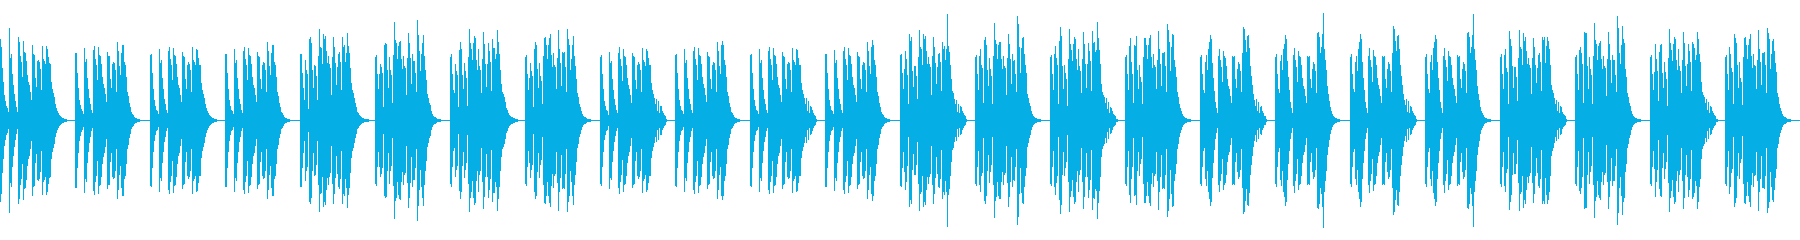 Everyday / Loose / Comical Recorder's reproduced waveform